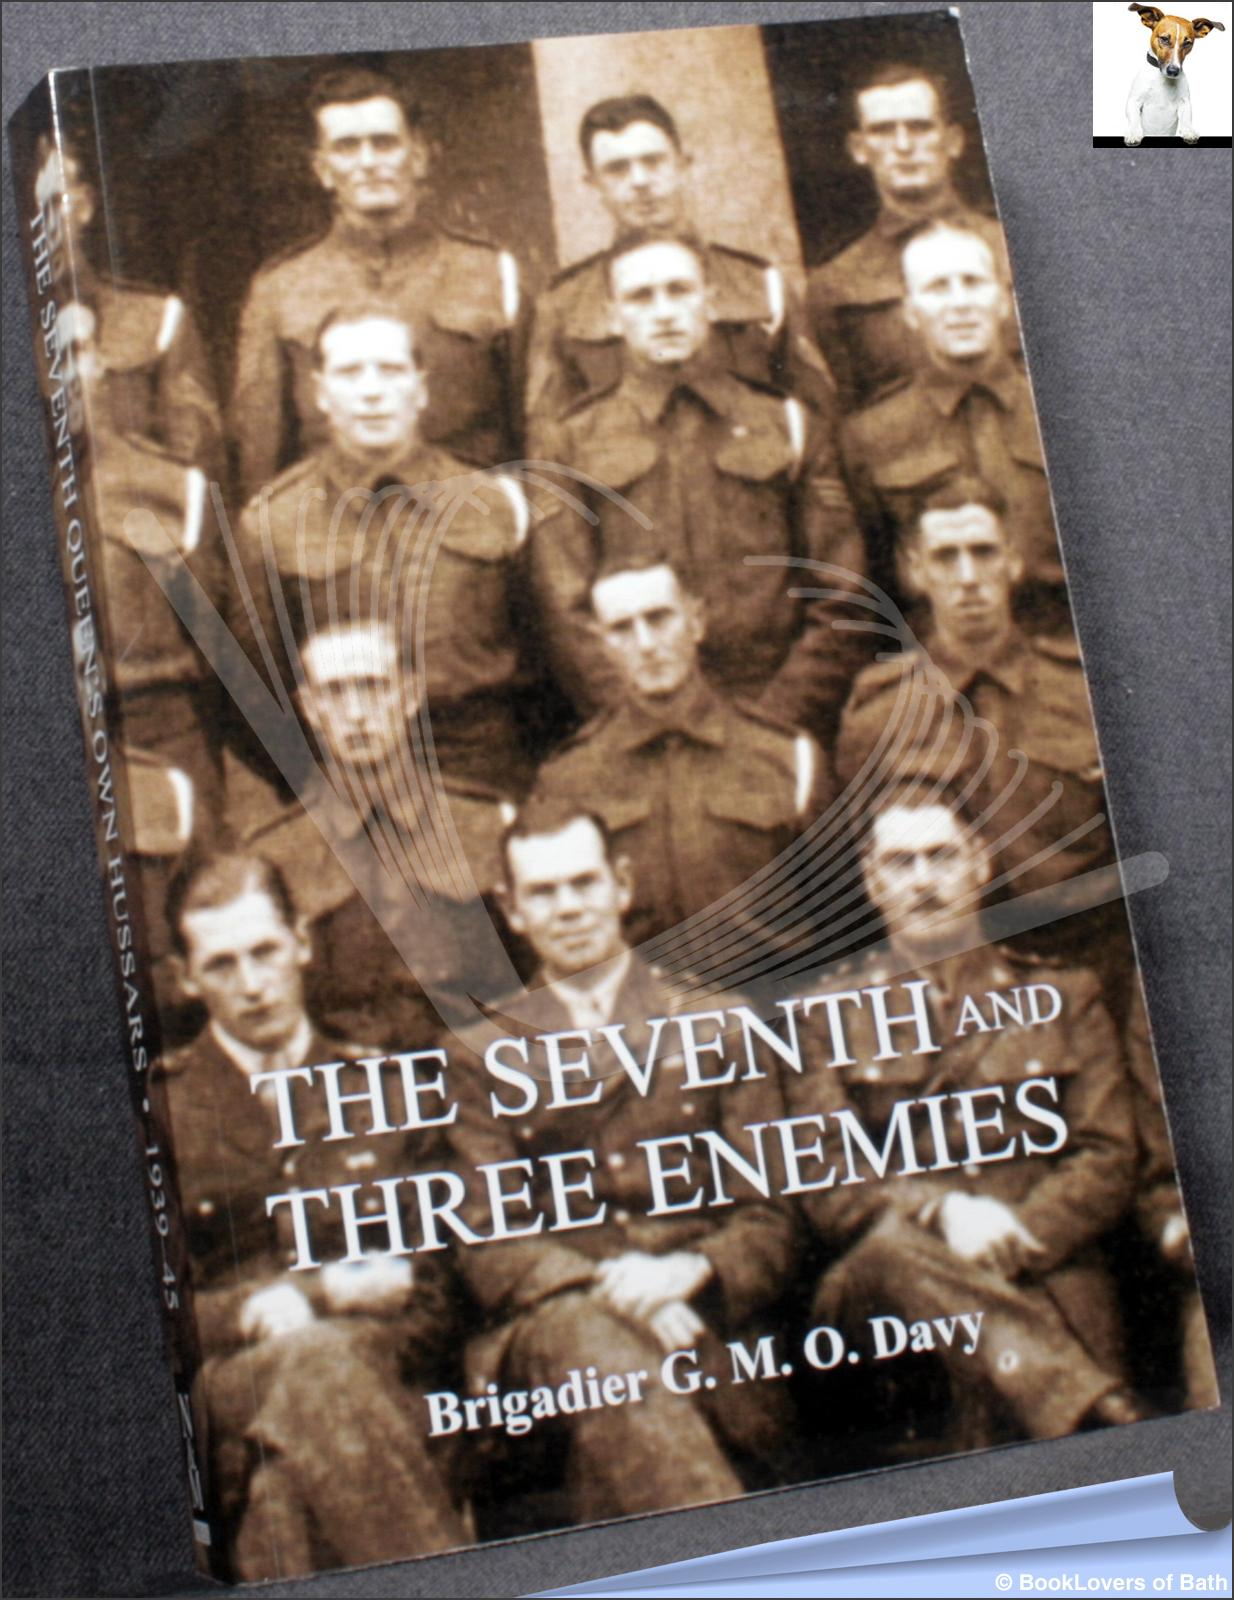 The Seventh and Three Enemies: The Story of World War II and the 7th Queen's Own Hussars - G. M. O. Davy